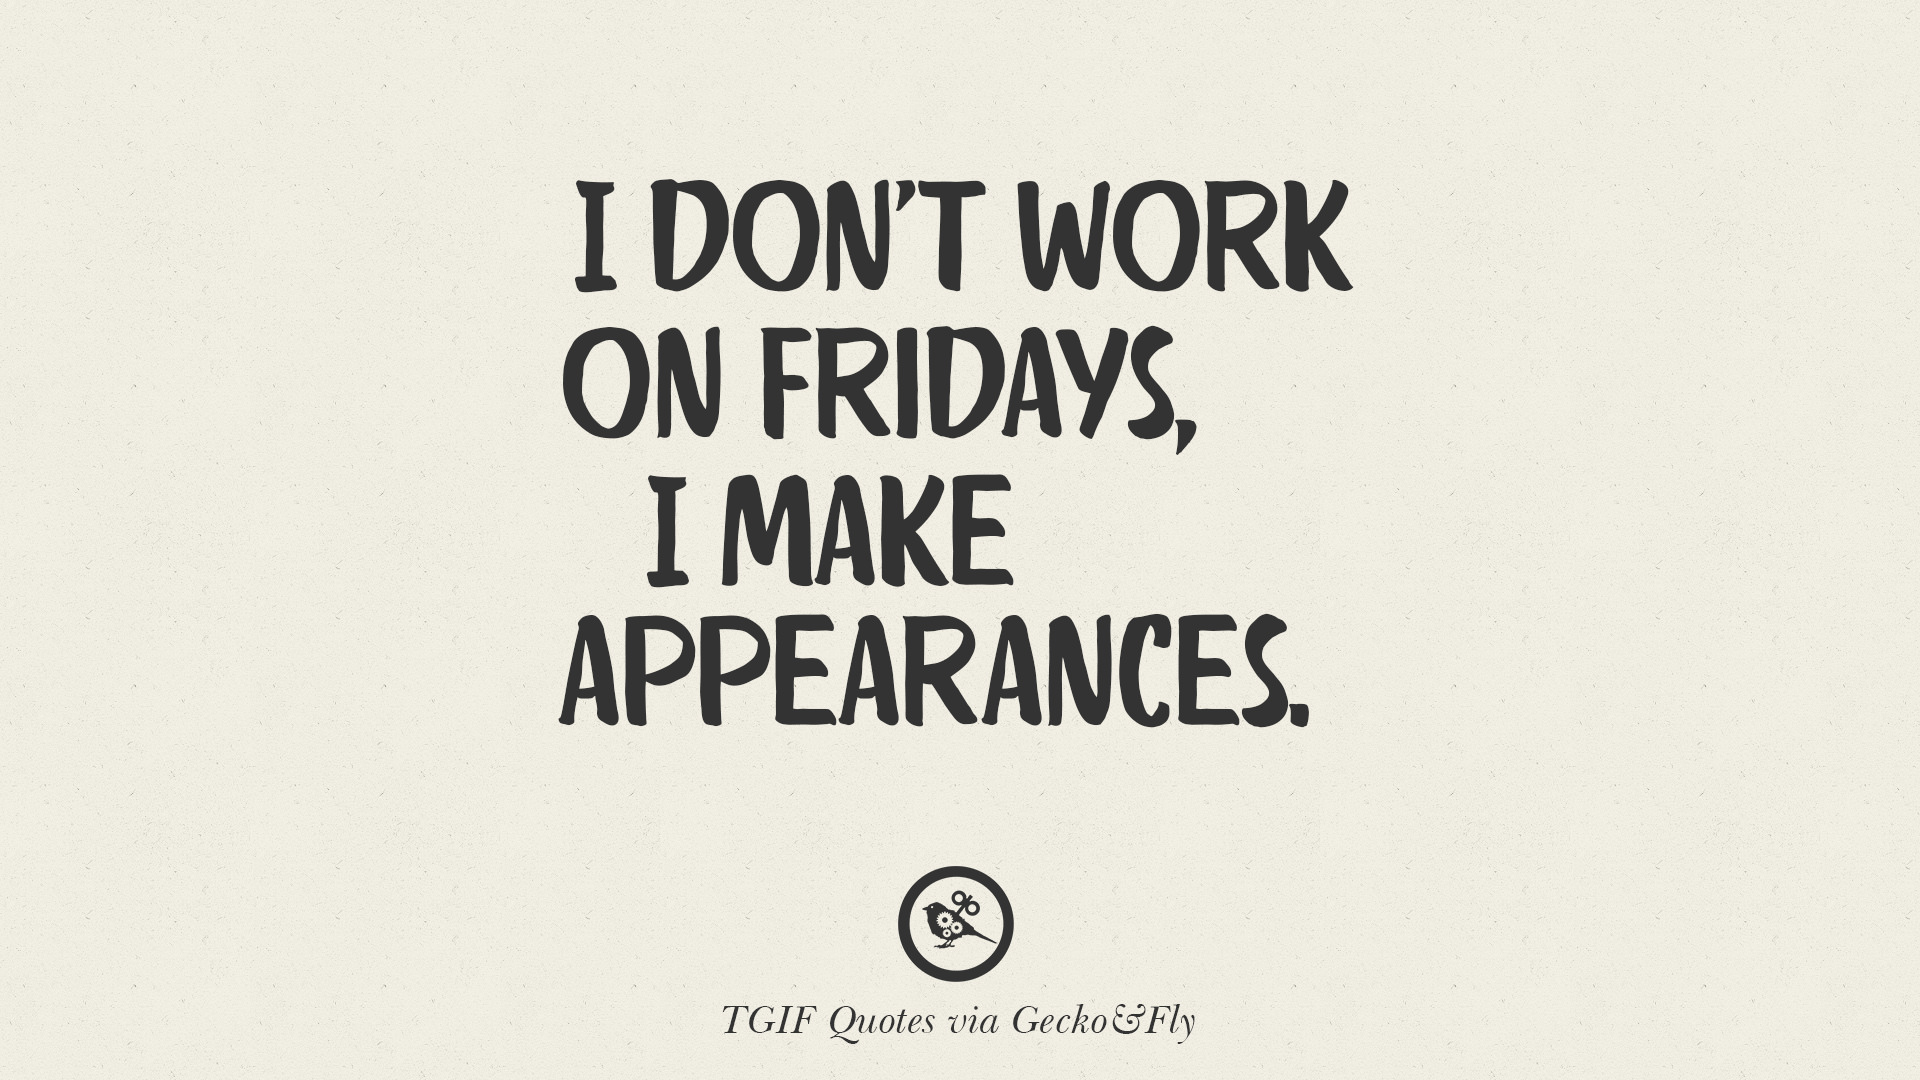 20 TGIF [ Thank God It's Friday ] Meme Quotes & Messages